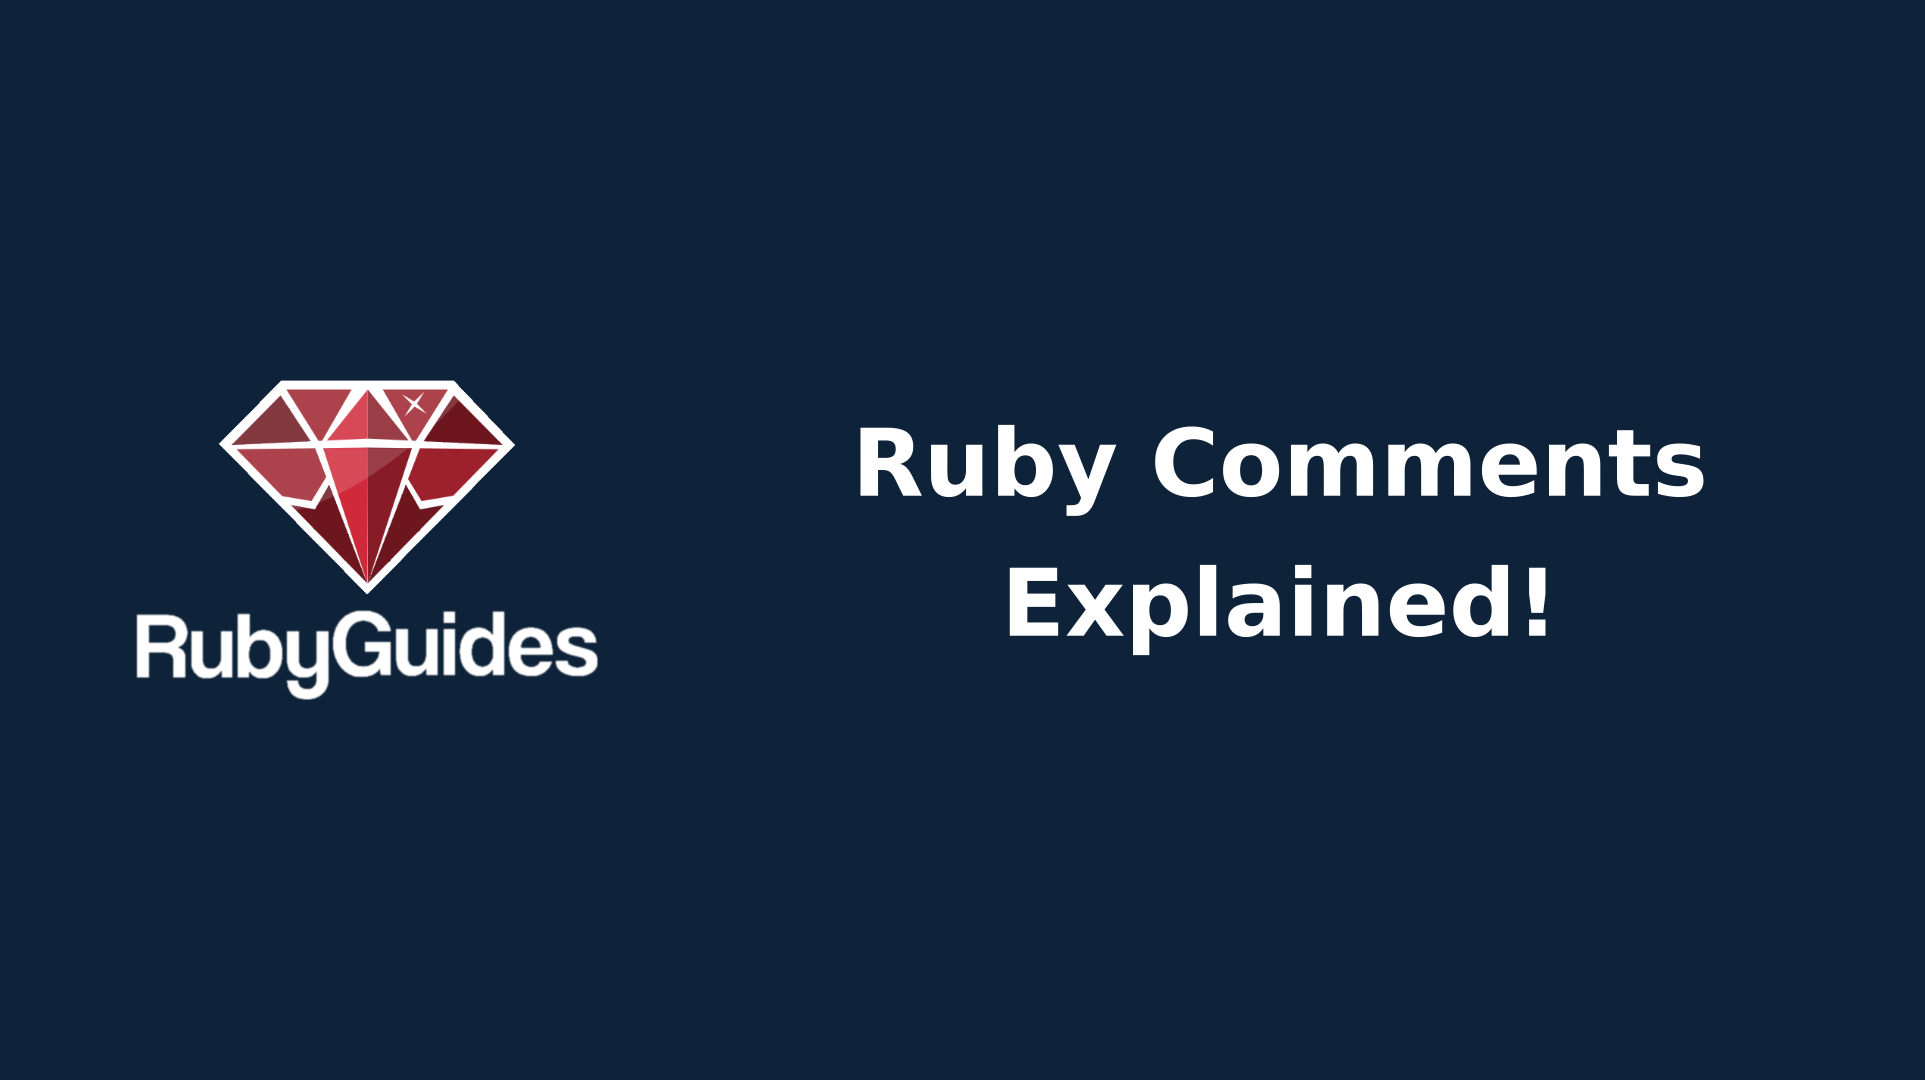 5 Types Of Ruby Comments & How to Use Them Correctly - RubyGuides